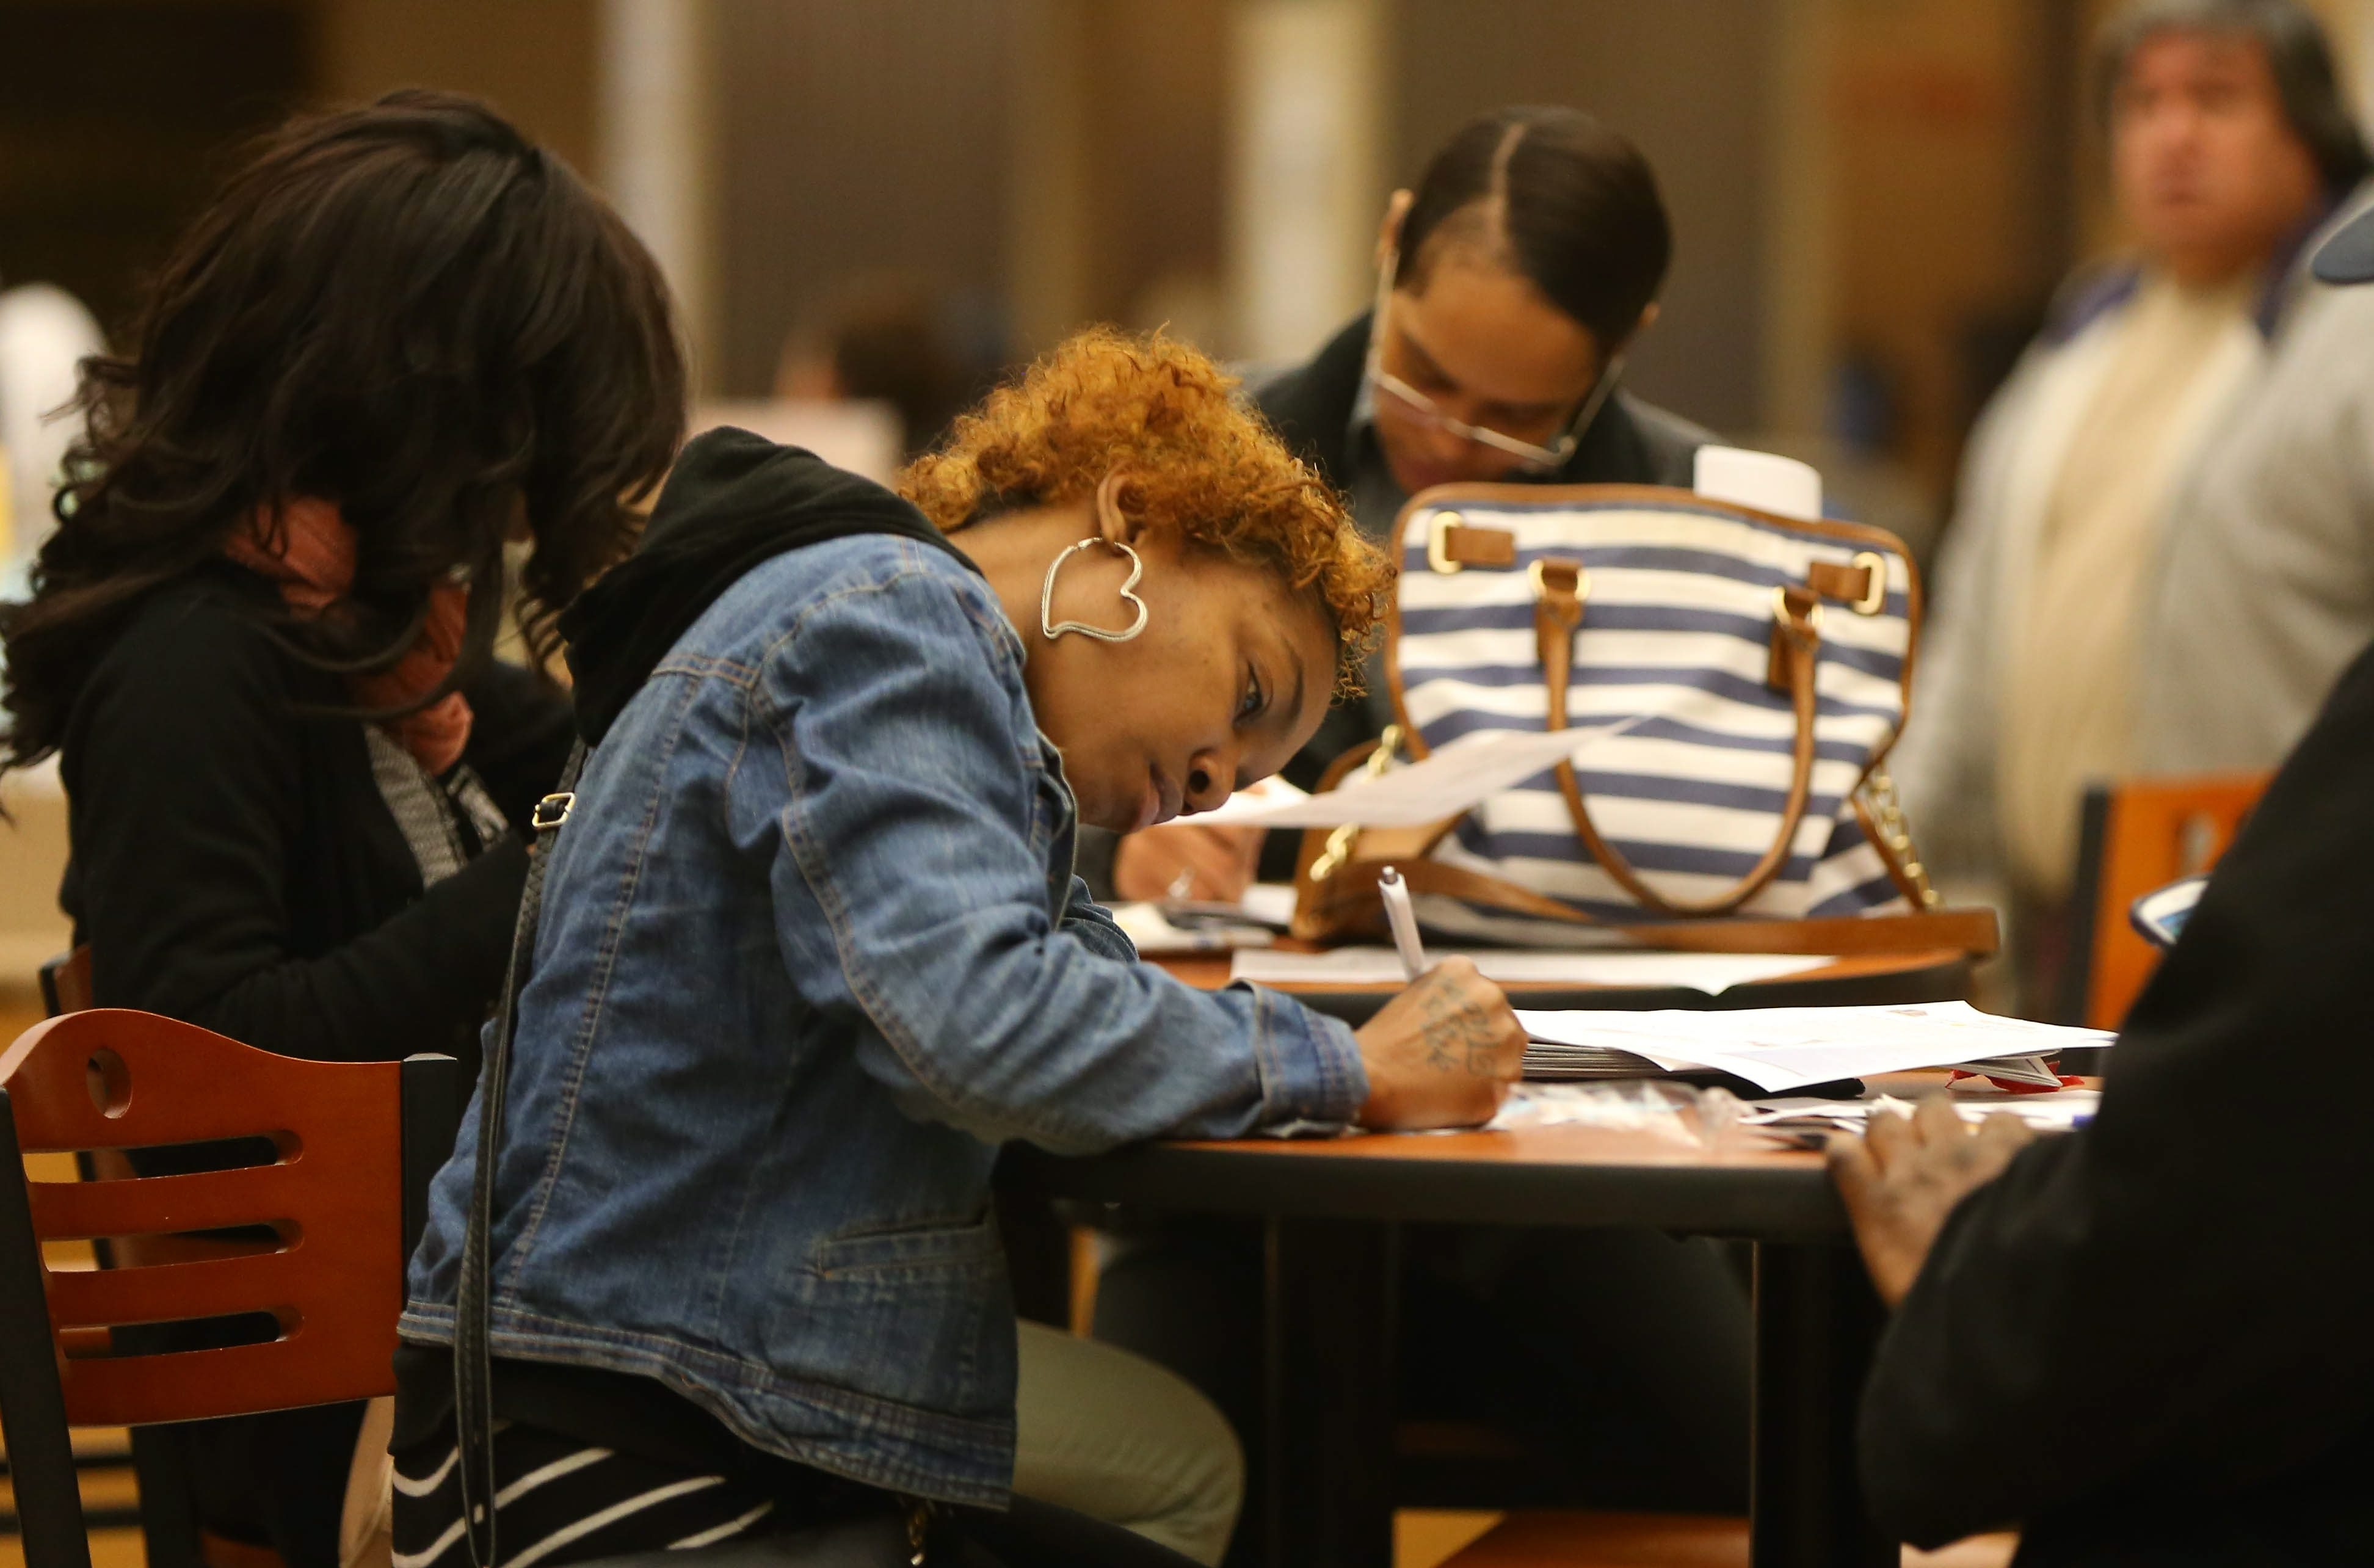 Monique Walton of Buffalo fills out an application at Autumn Diversity Career Fair in the Central Library.